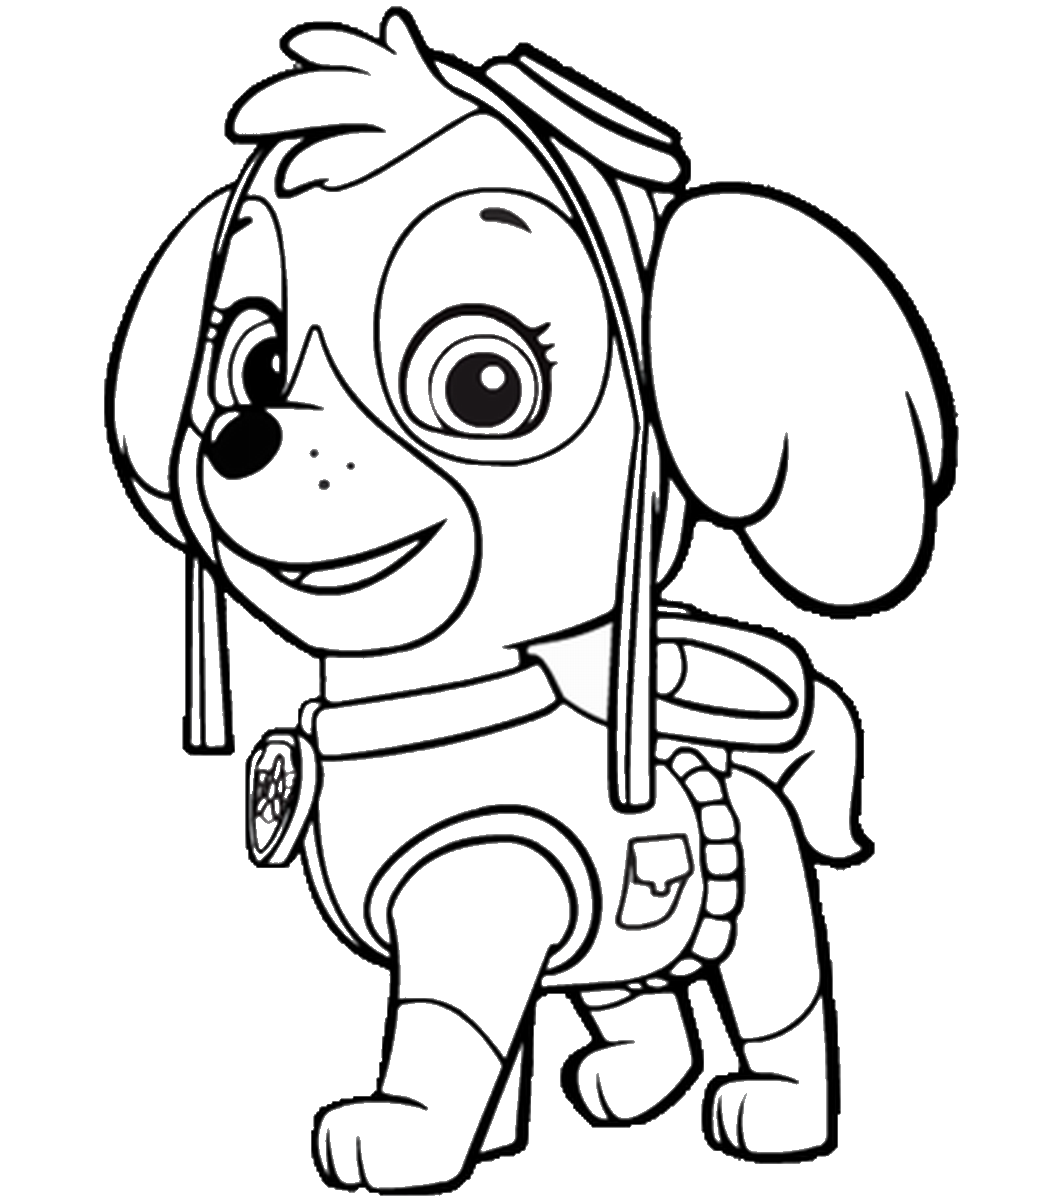 PAW Patrol Coloring Pages 2 - Print Color Craft